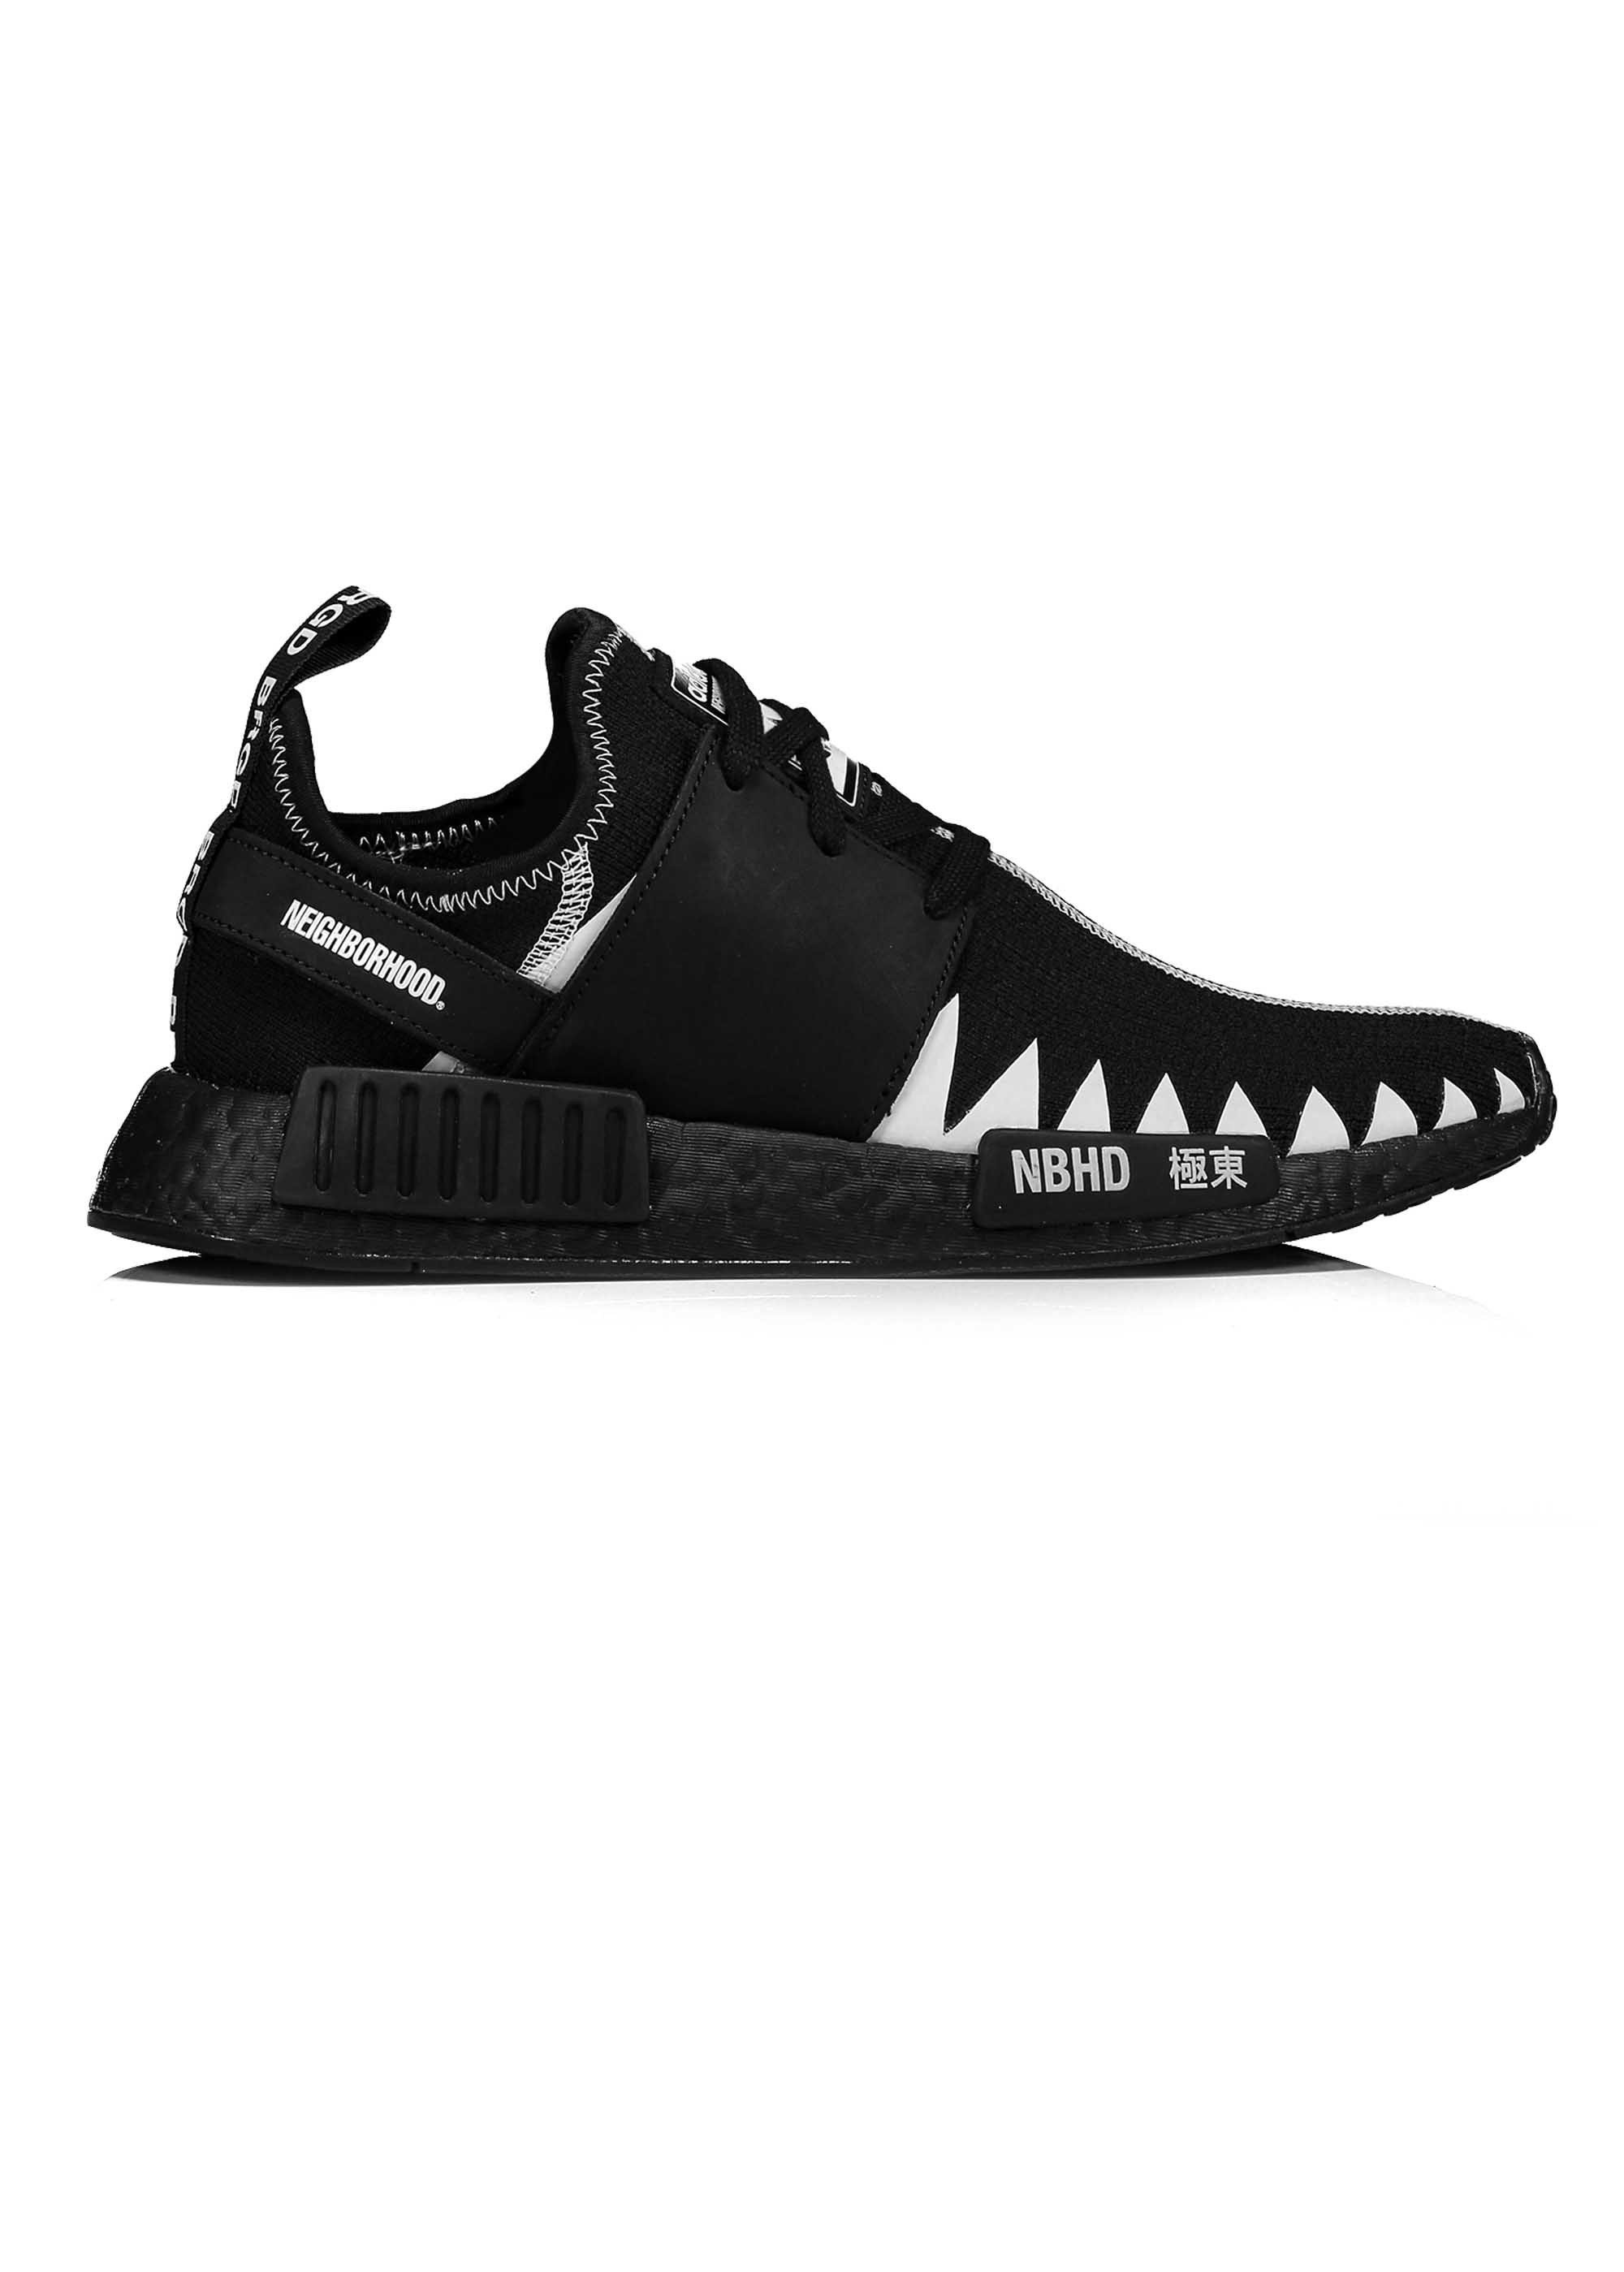 size 40 d3c57 e16ca adidas Originals Footwear x Neighborhood NMD R1 PK NBHD - Black